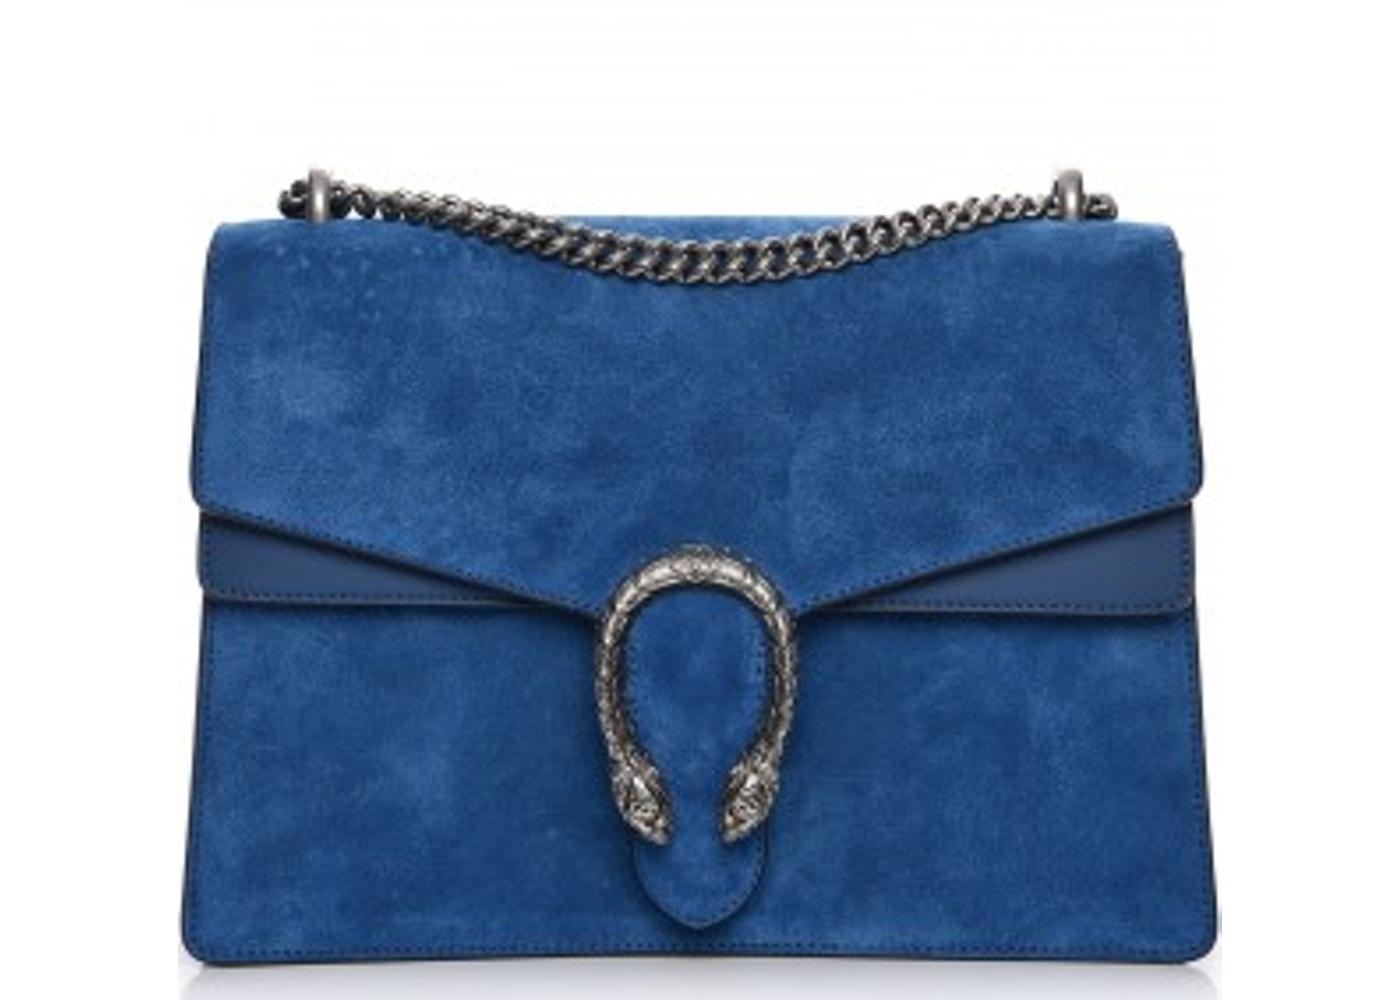 b9ba1e0630a8 Gucci Dionysus Shoulder Suede Blue Medium. Suede Blue Medium